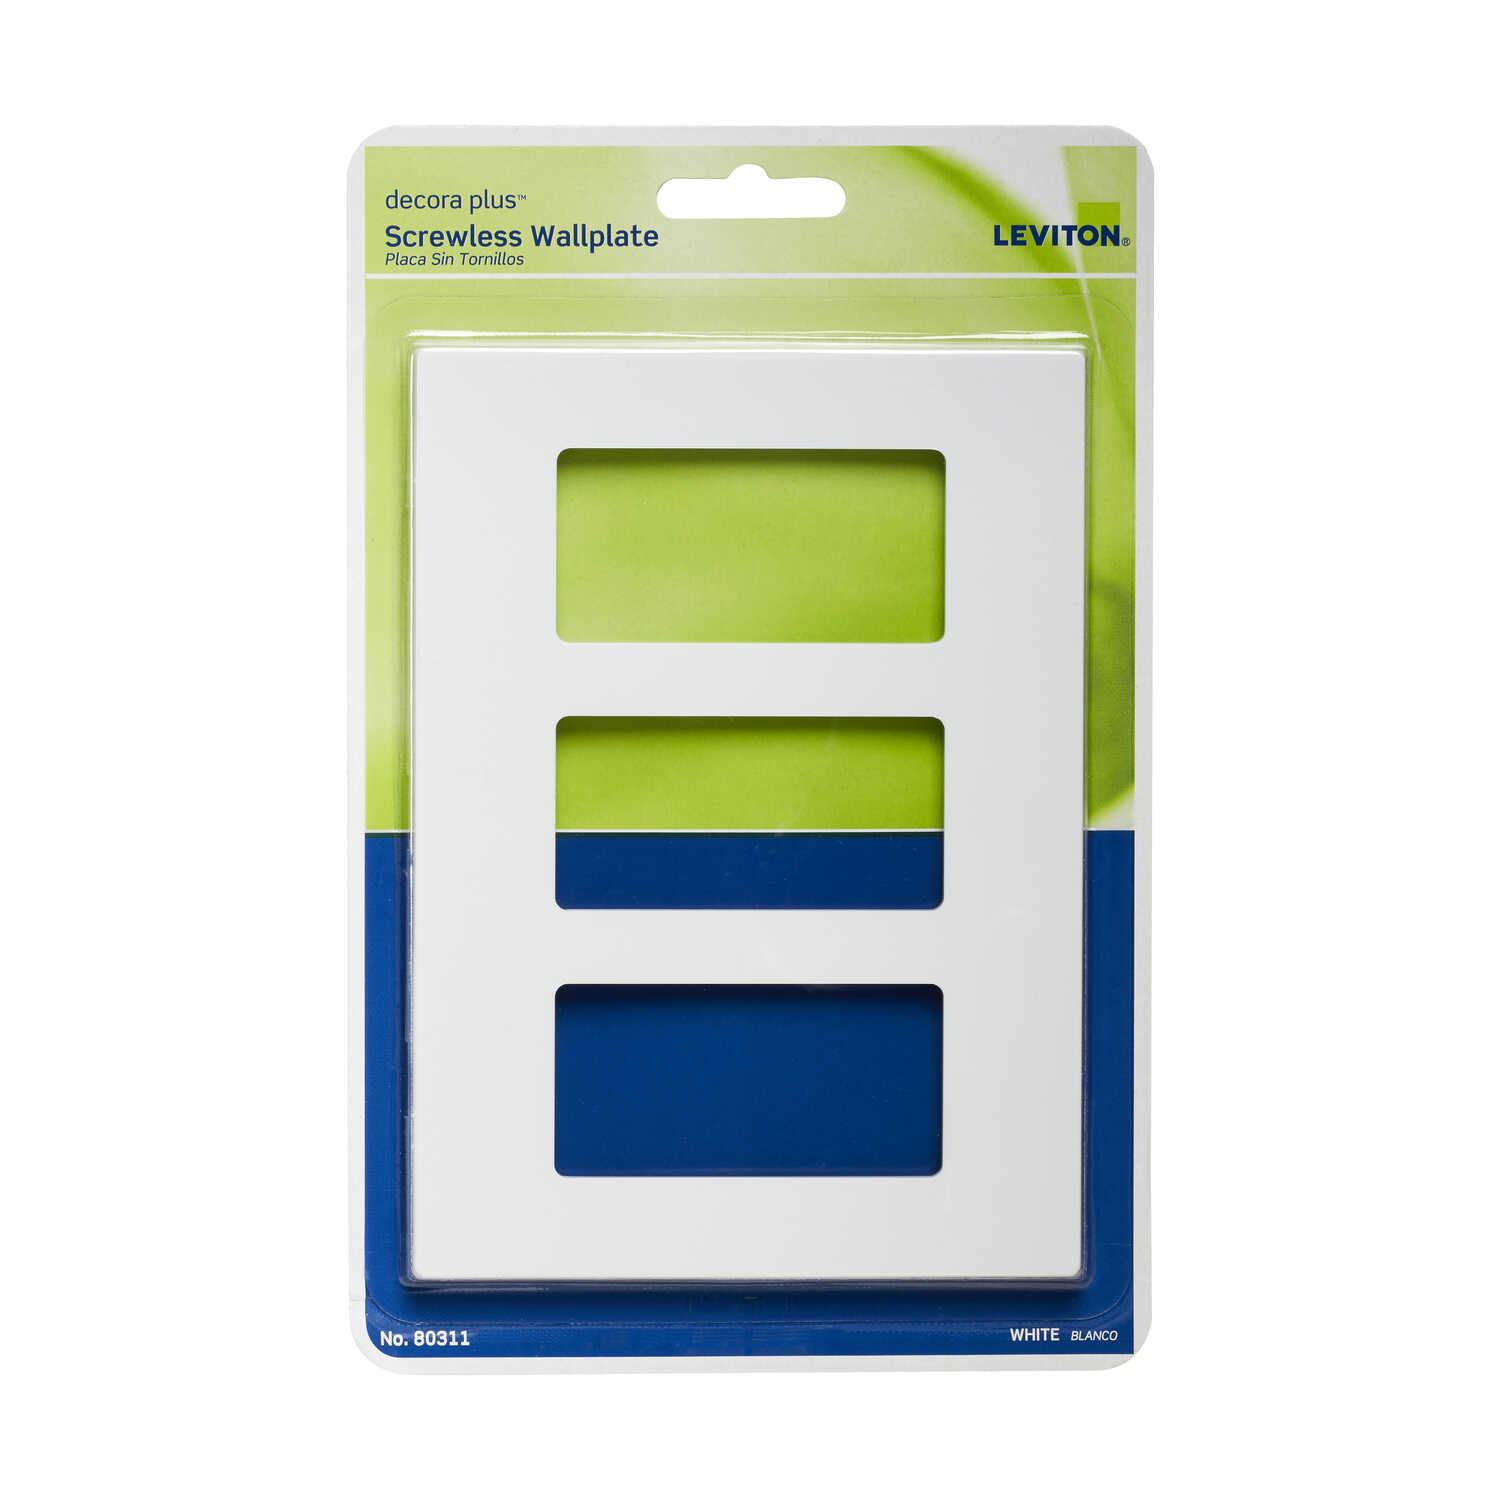 Leviton  Decora Plus  White  3 gang Polycarbonate  Rocker  Screwless Wall Plate  1 pk